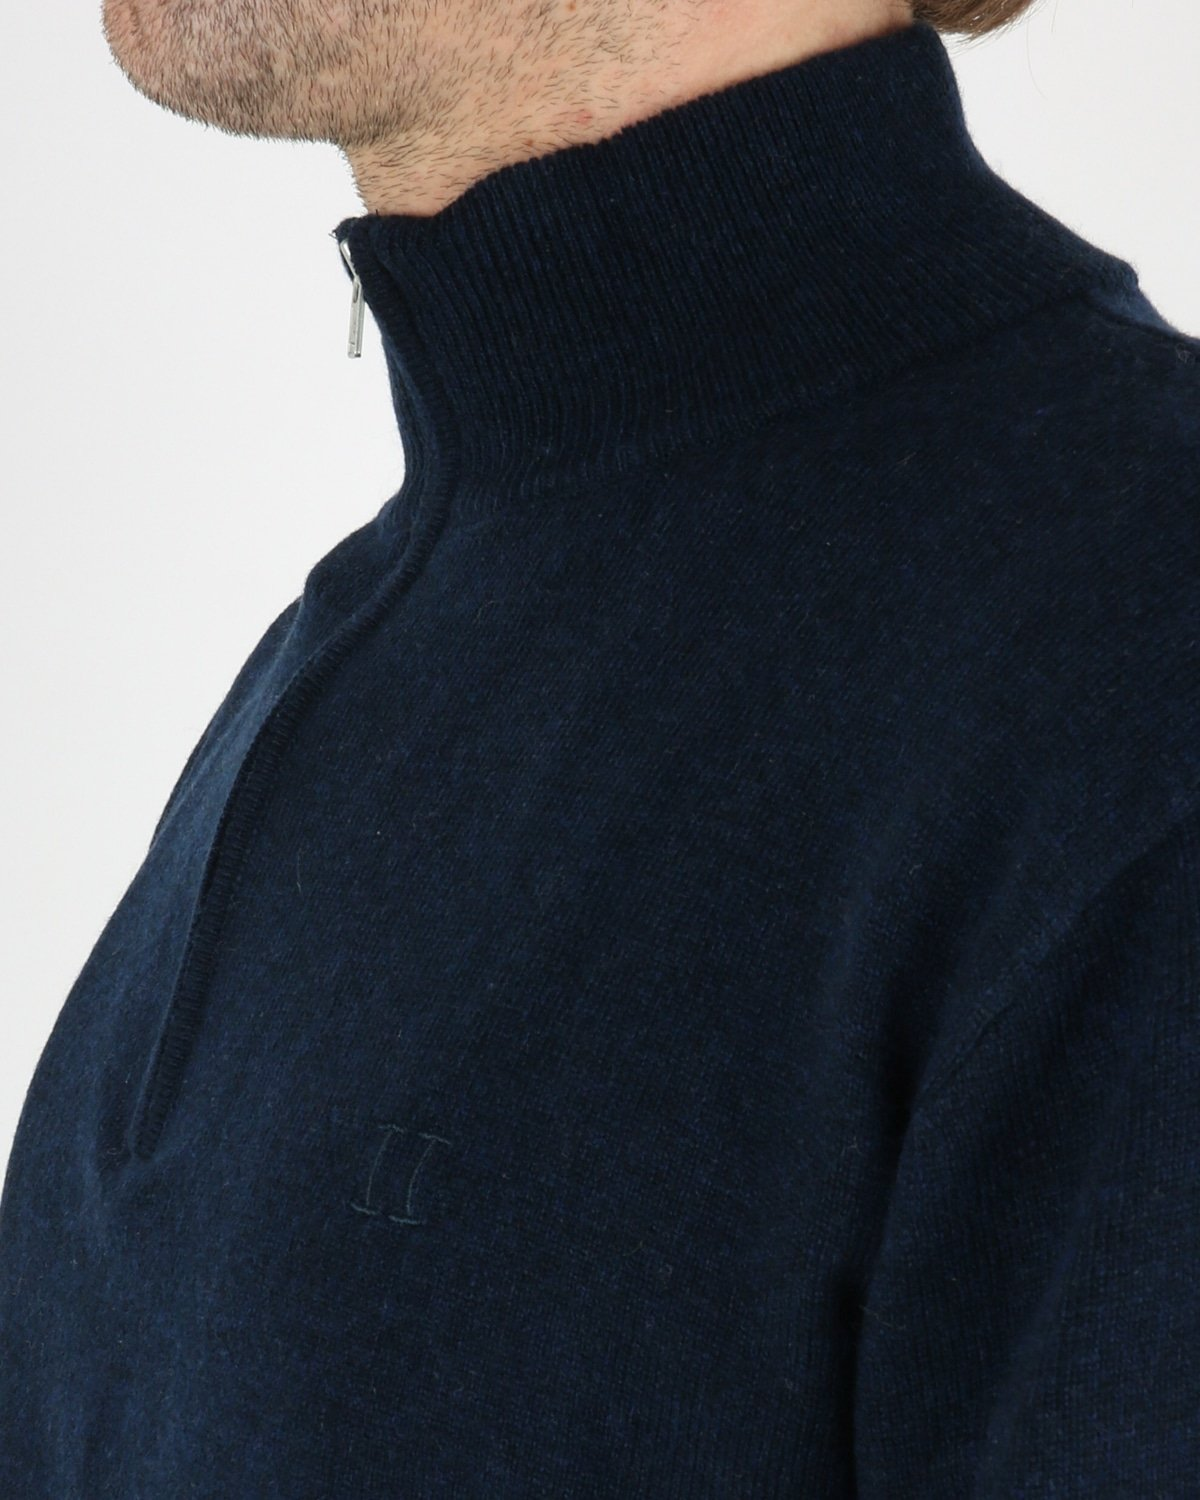 les deux_cashmerino zipper knit_dark navy_3_4